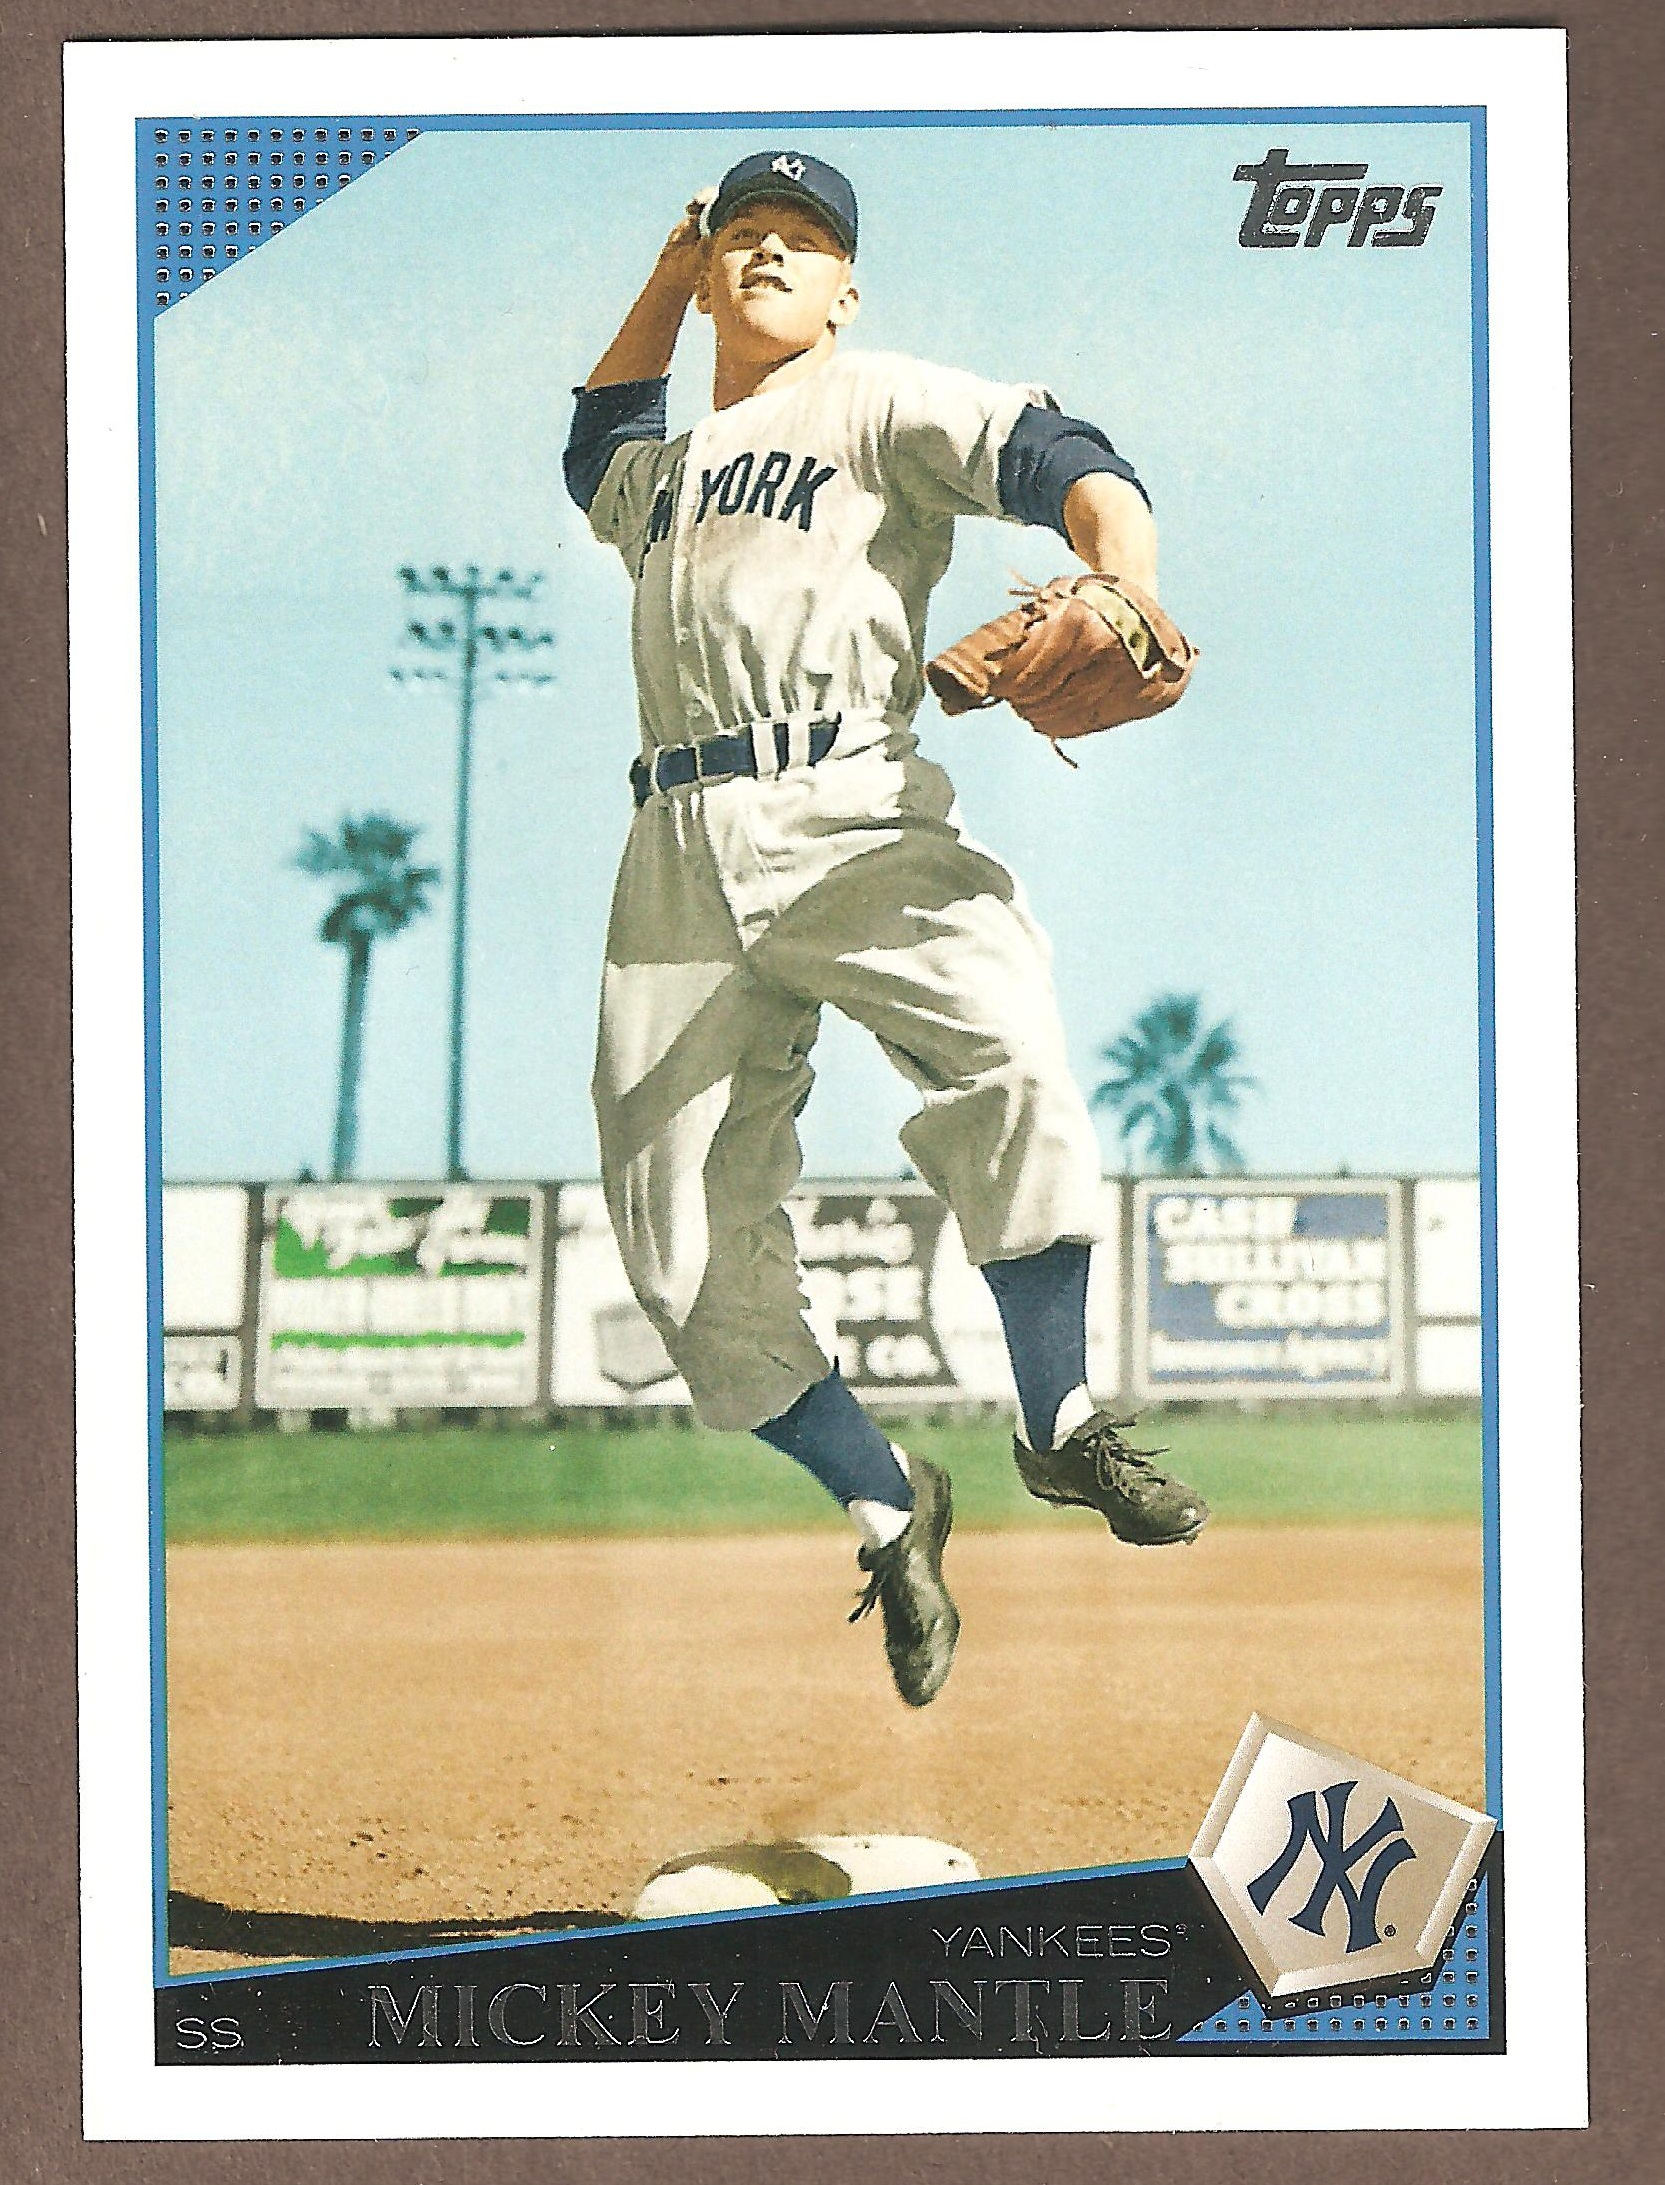 2009 Topps Mickey Mantle